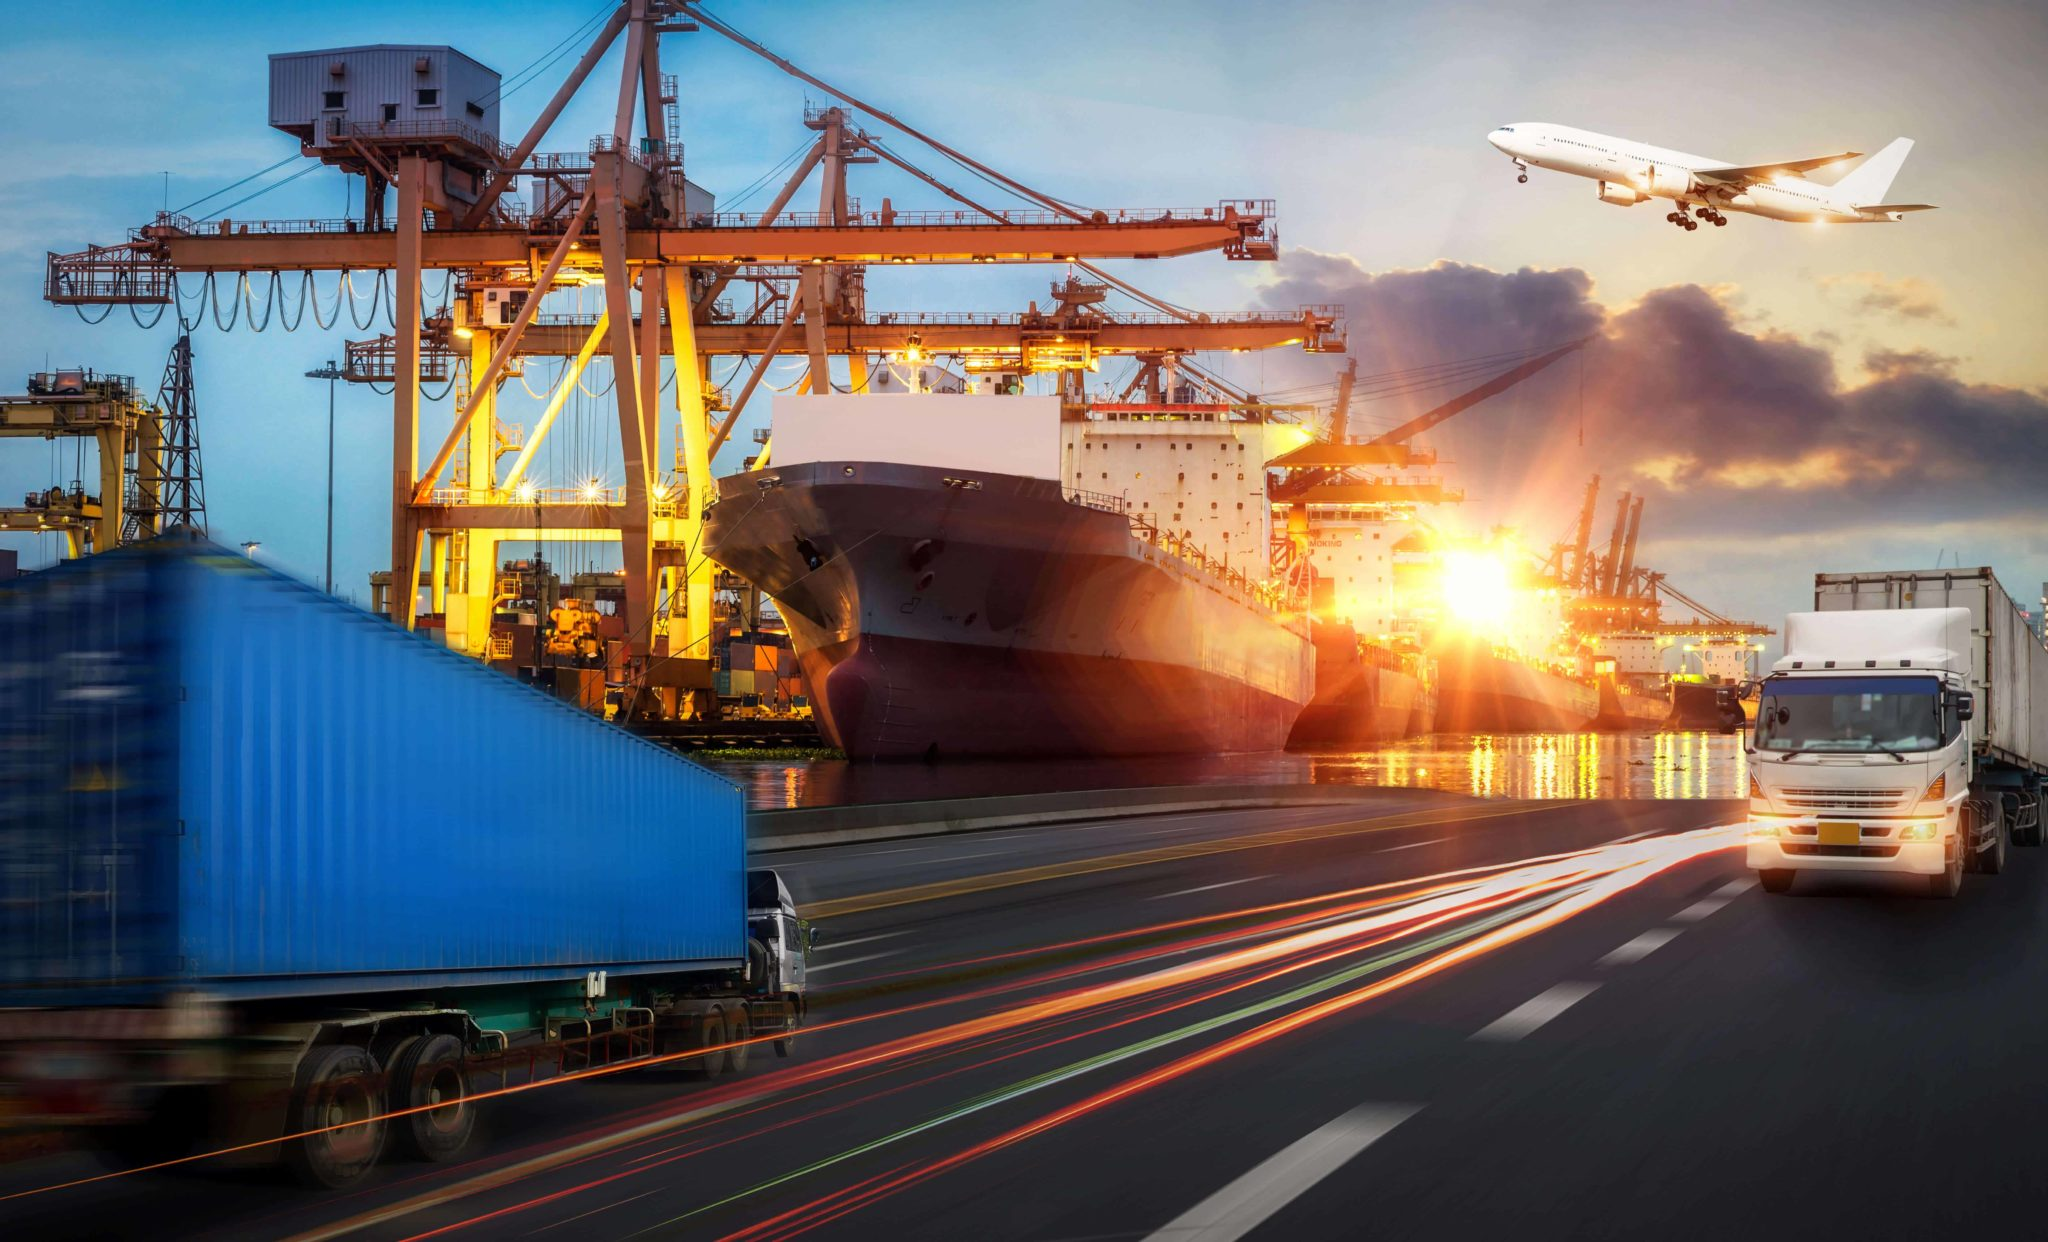 The global transport & logistic industry is targeted by 116 cyberattacks daily